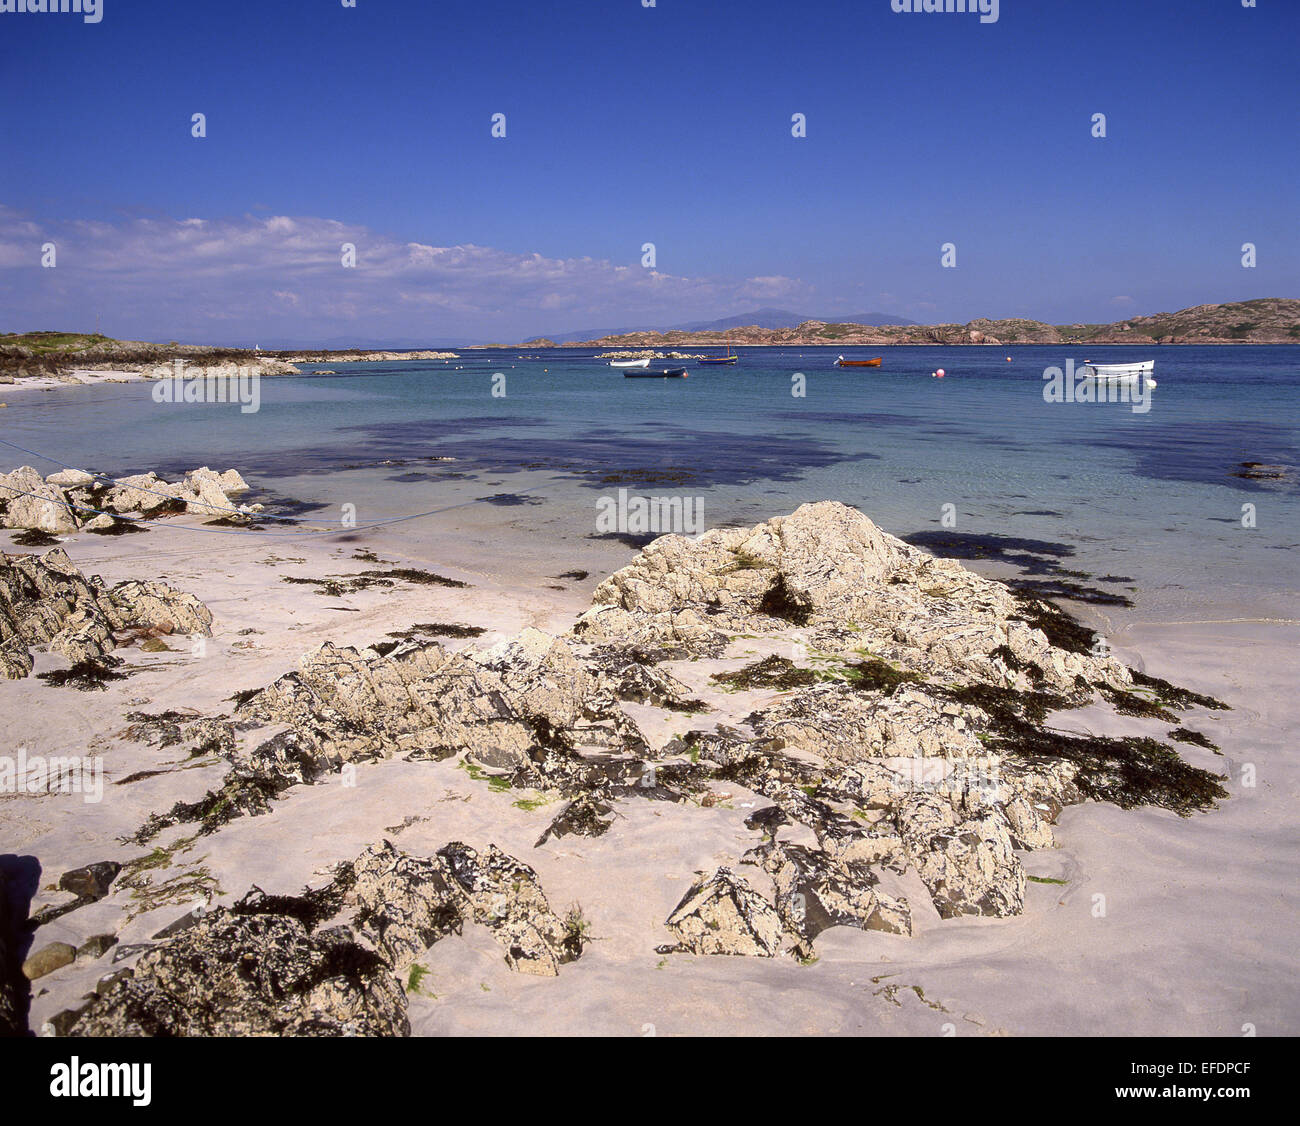 Beach view, Iona, The Inner Hebrides, The Hebrides, Scotland, United Kingdom Stock Photo